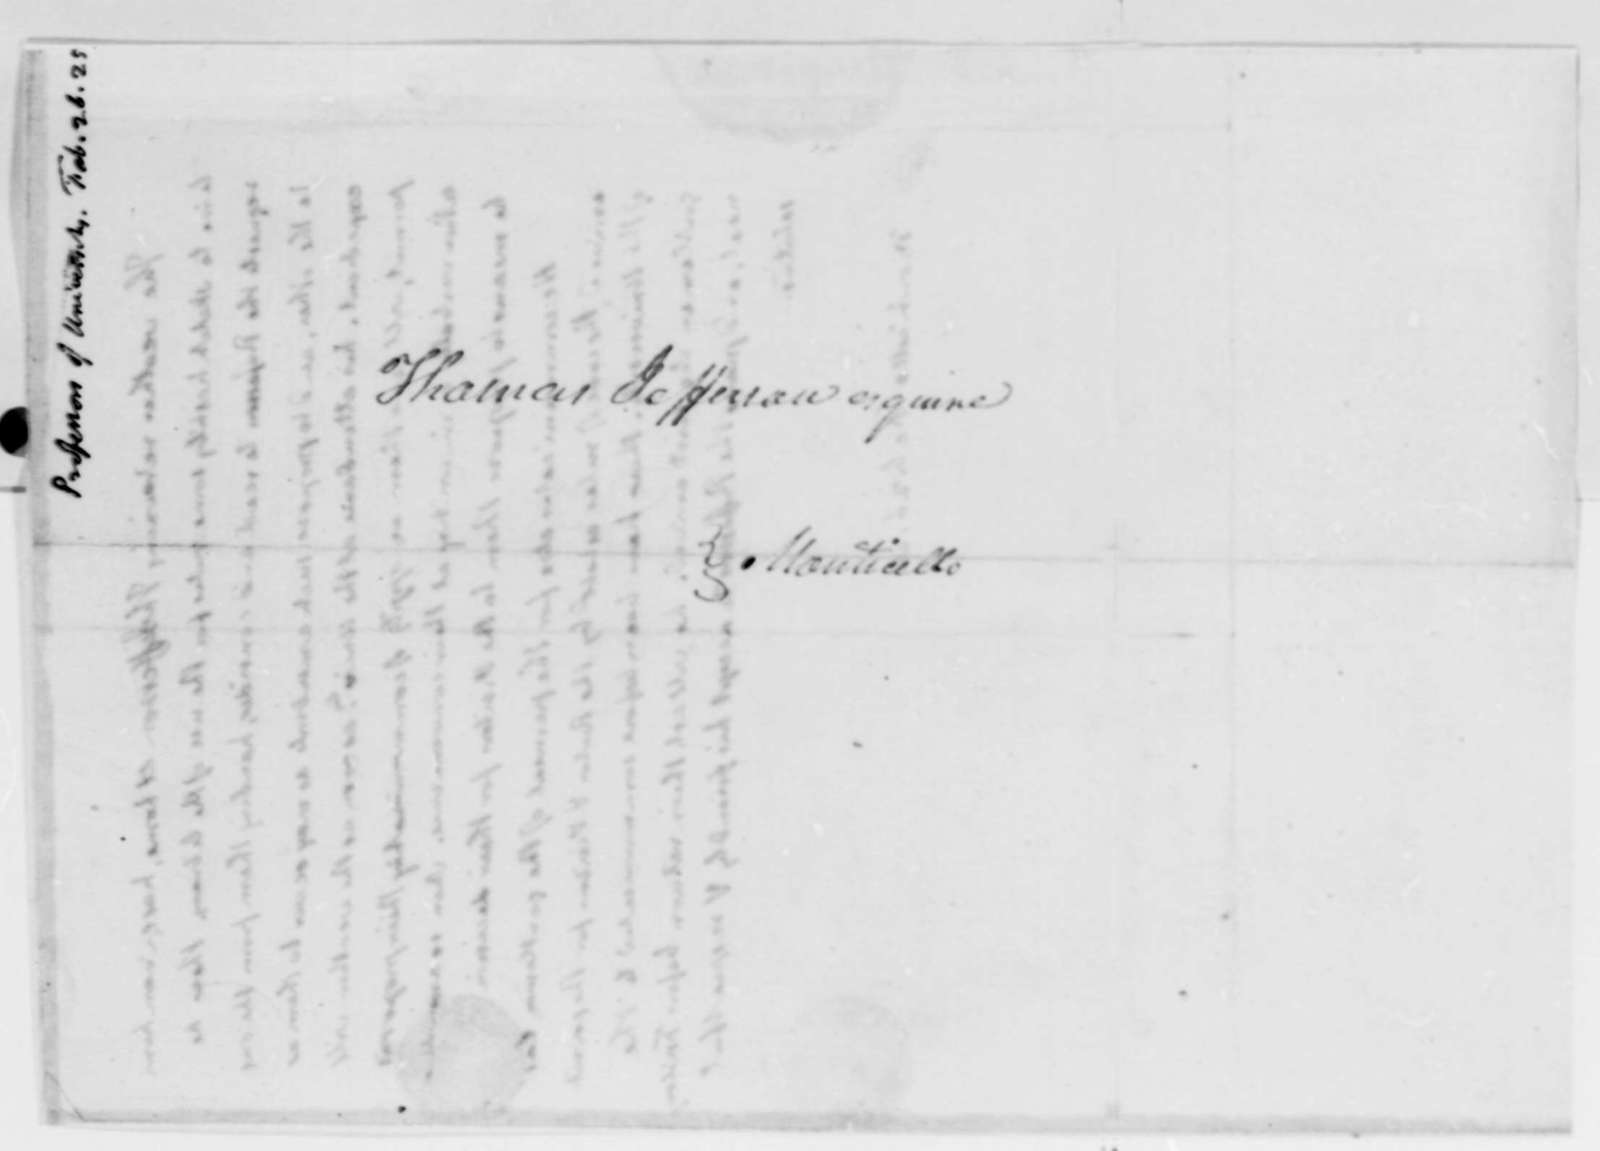 Thomas Jefferson to University of Virginia Professors, February 26, 1825, with Copy